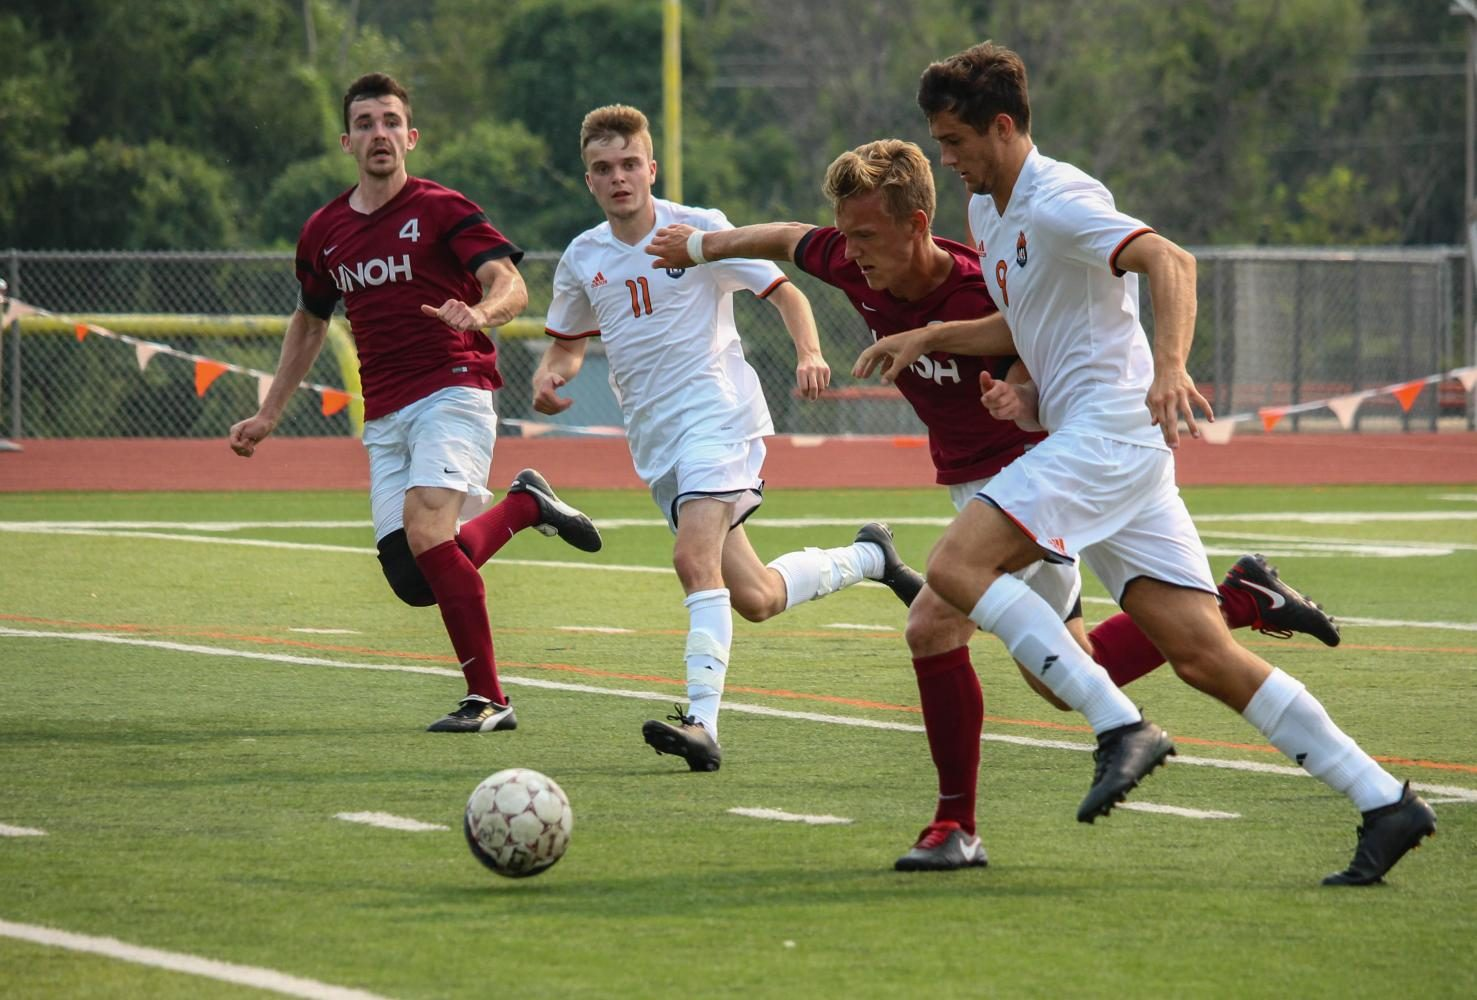 Joseph Houlihan and Jack Adamson work together to push the ball down field.